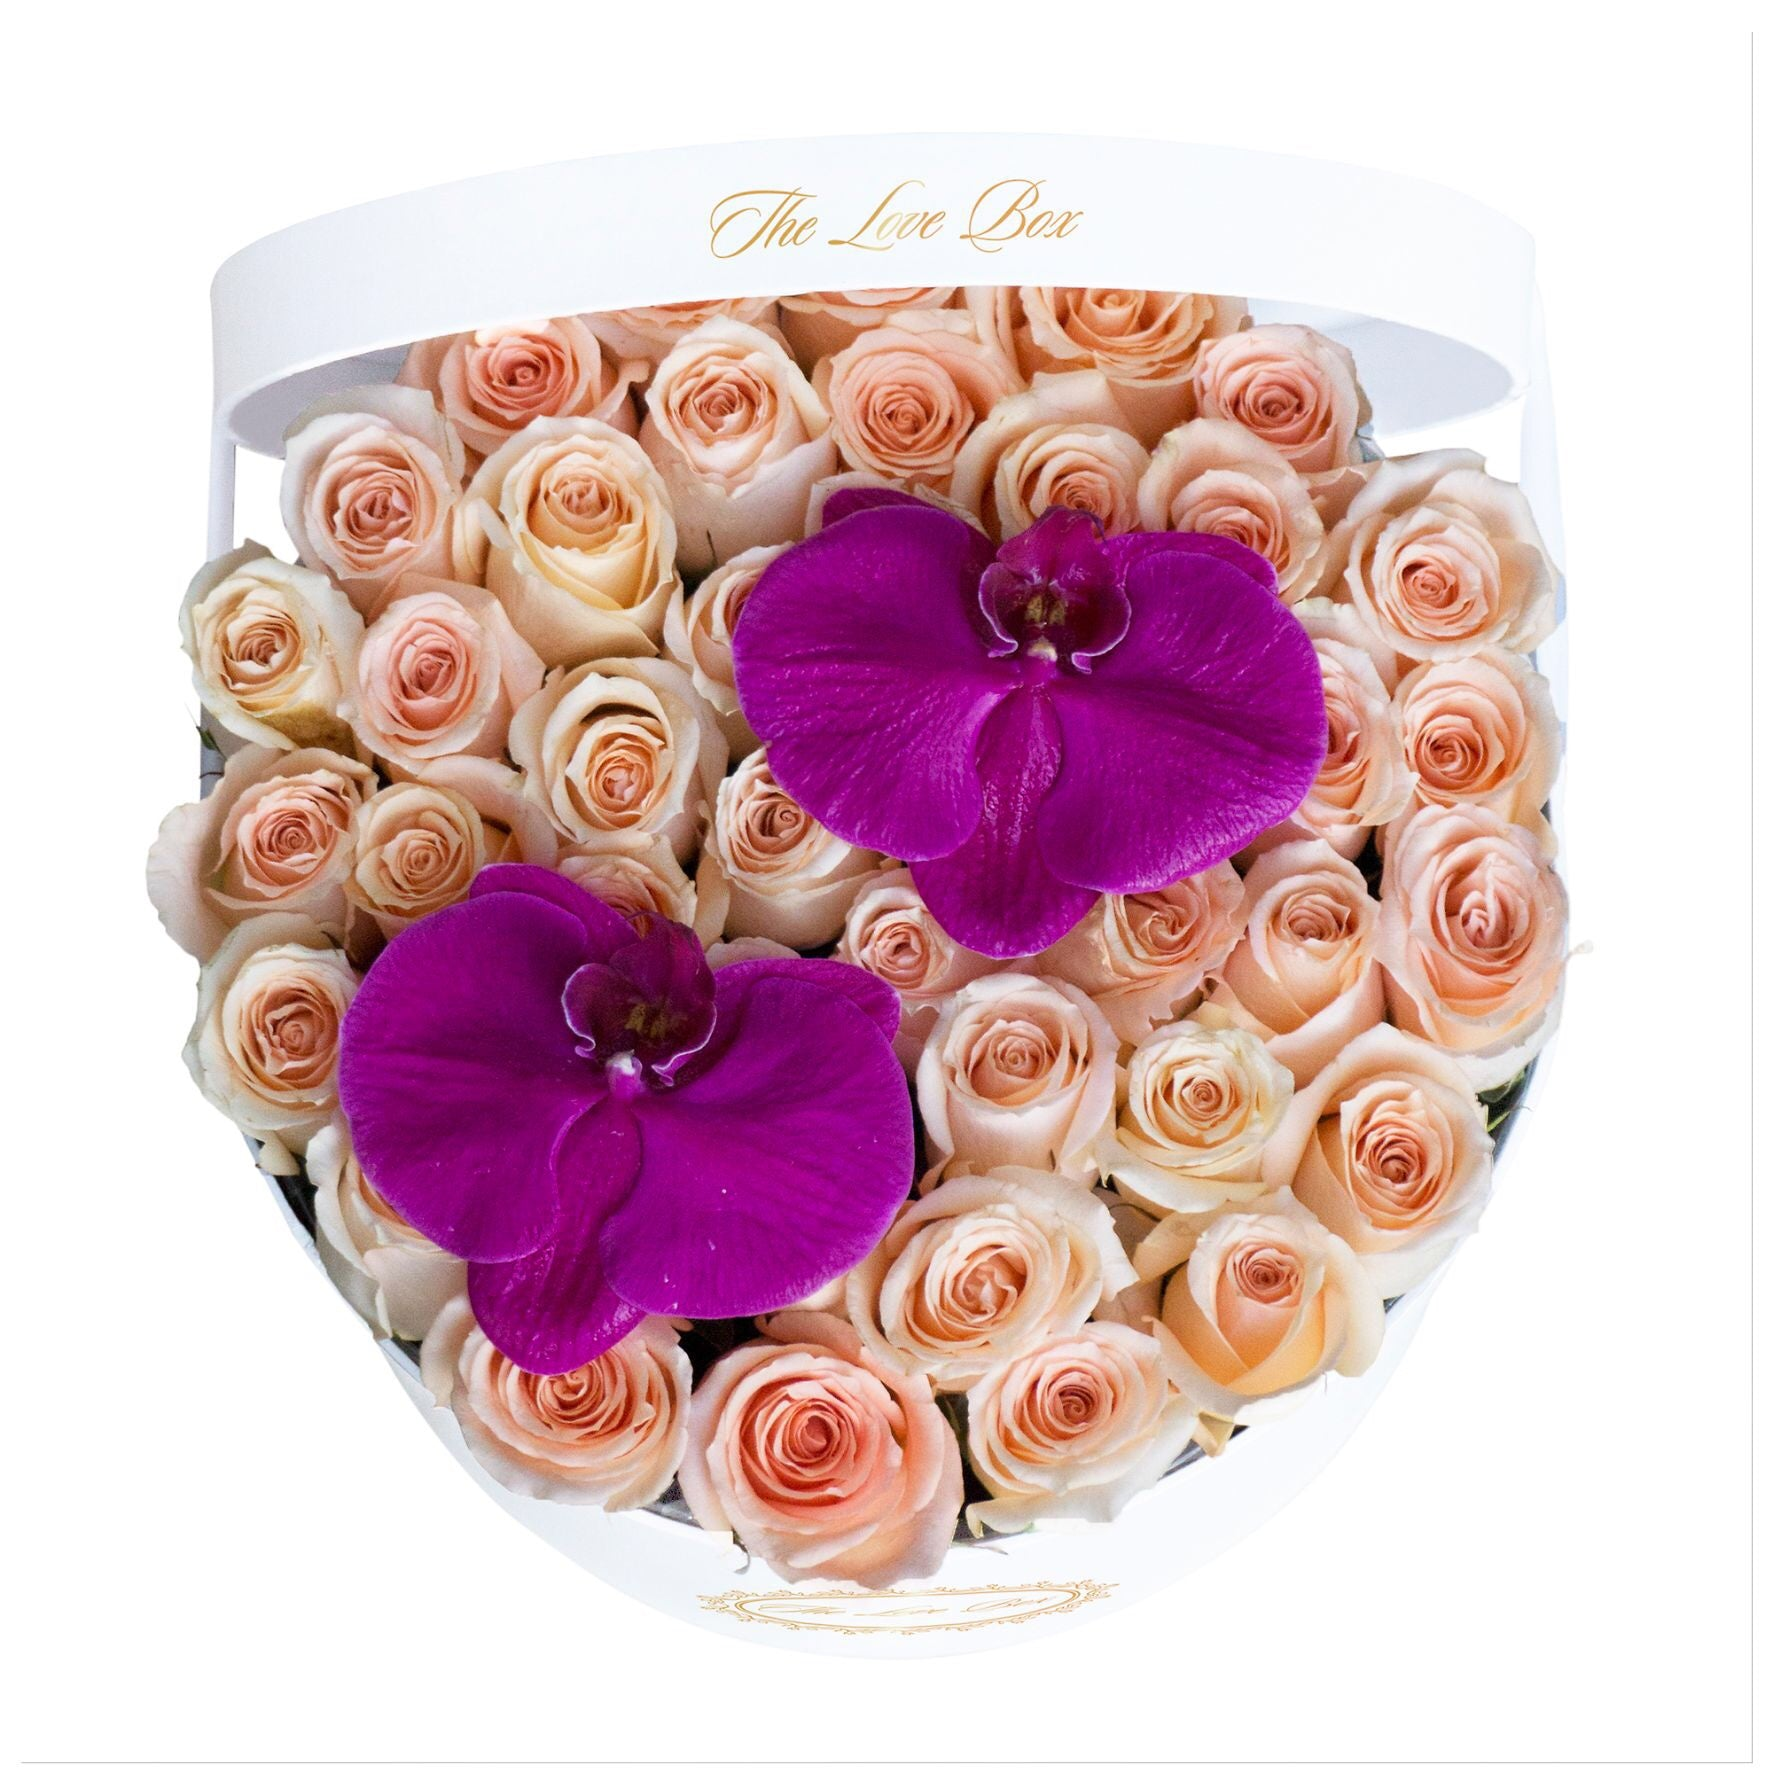 Light Orange Roses with Orchid Flowers in Large White Box - The Love Box Flowers